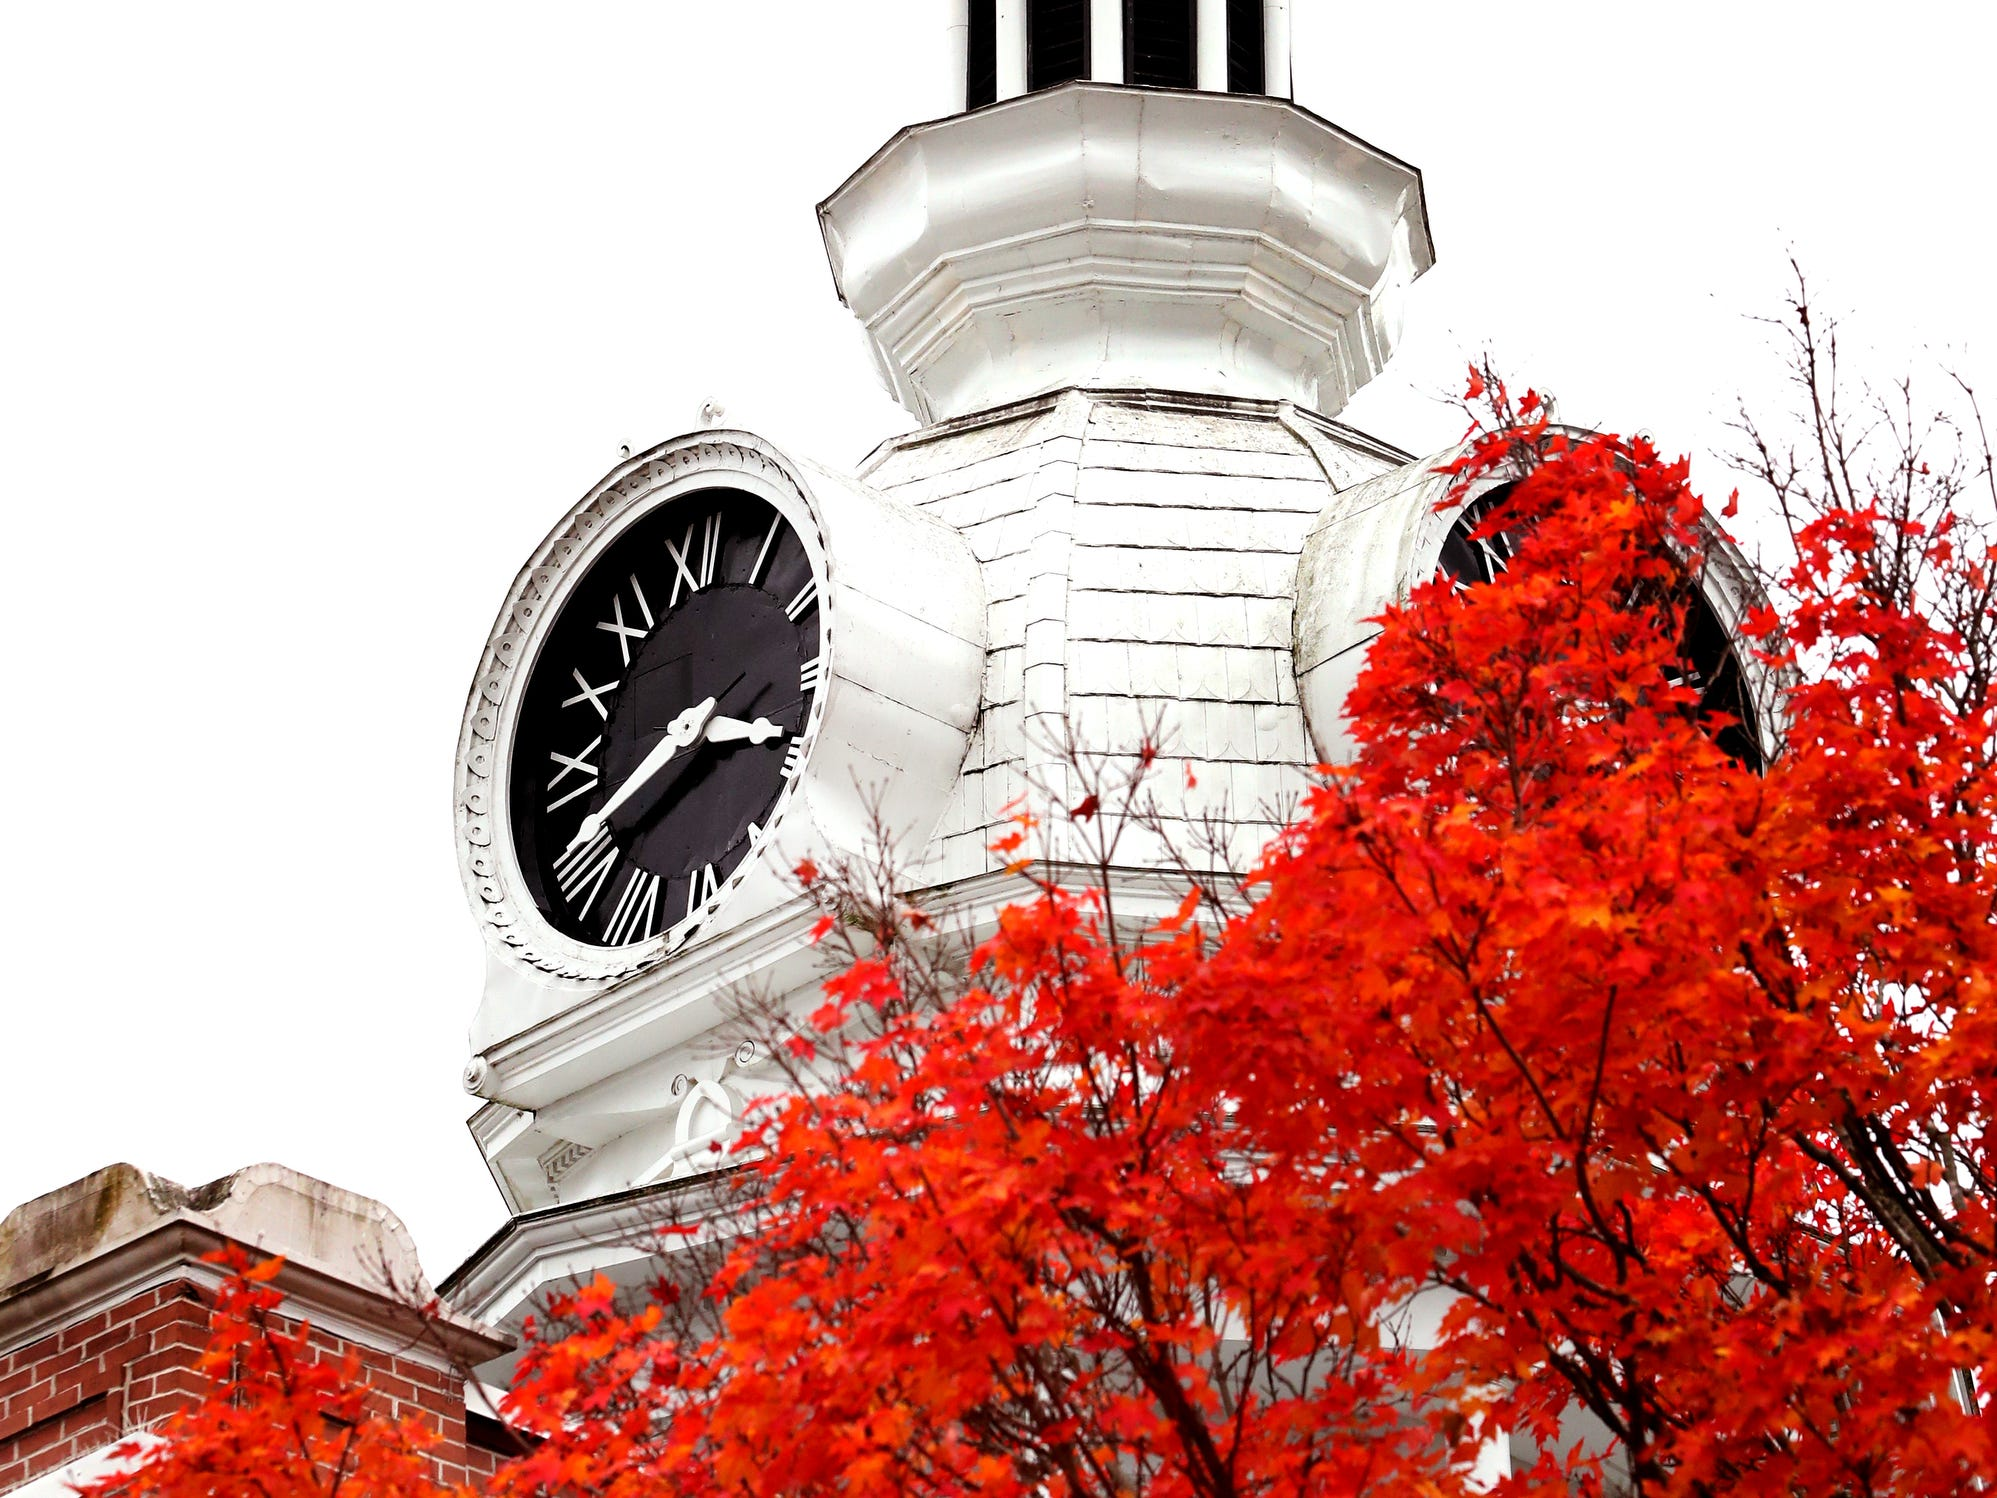 Birds flock to the to top of the cupola of the Rutherford County Courthouse in Murfreesboro as trees begin to change color and fall from their branches on the first day of November around the Murfreesboro Public Square on Thursday, Nov. 1, 2018.